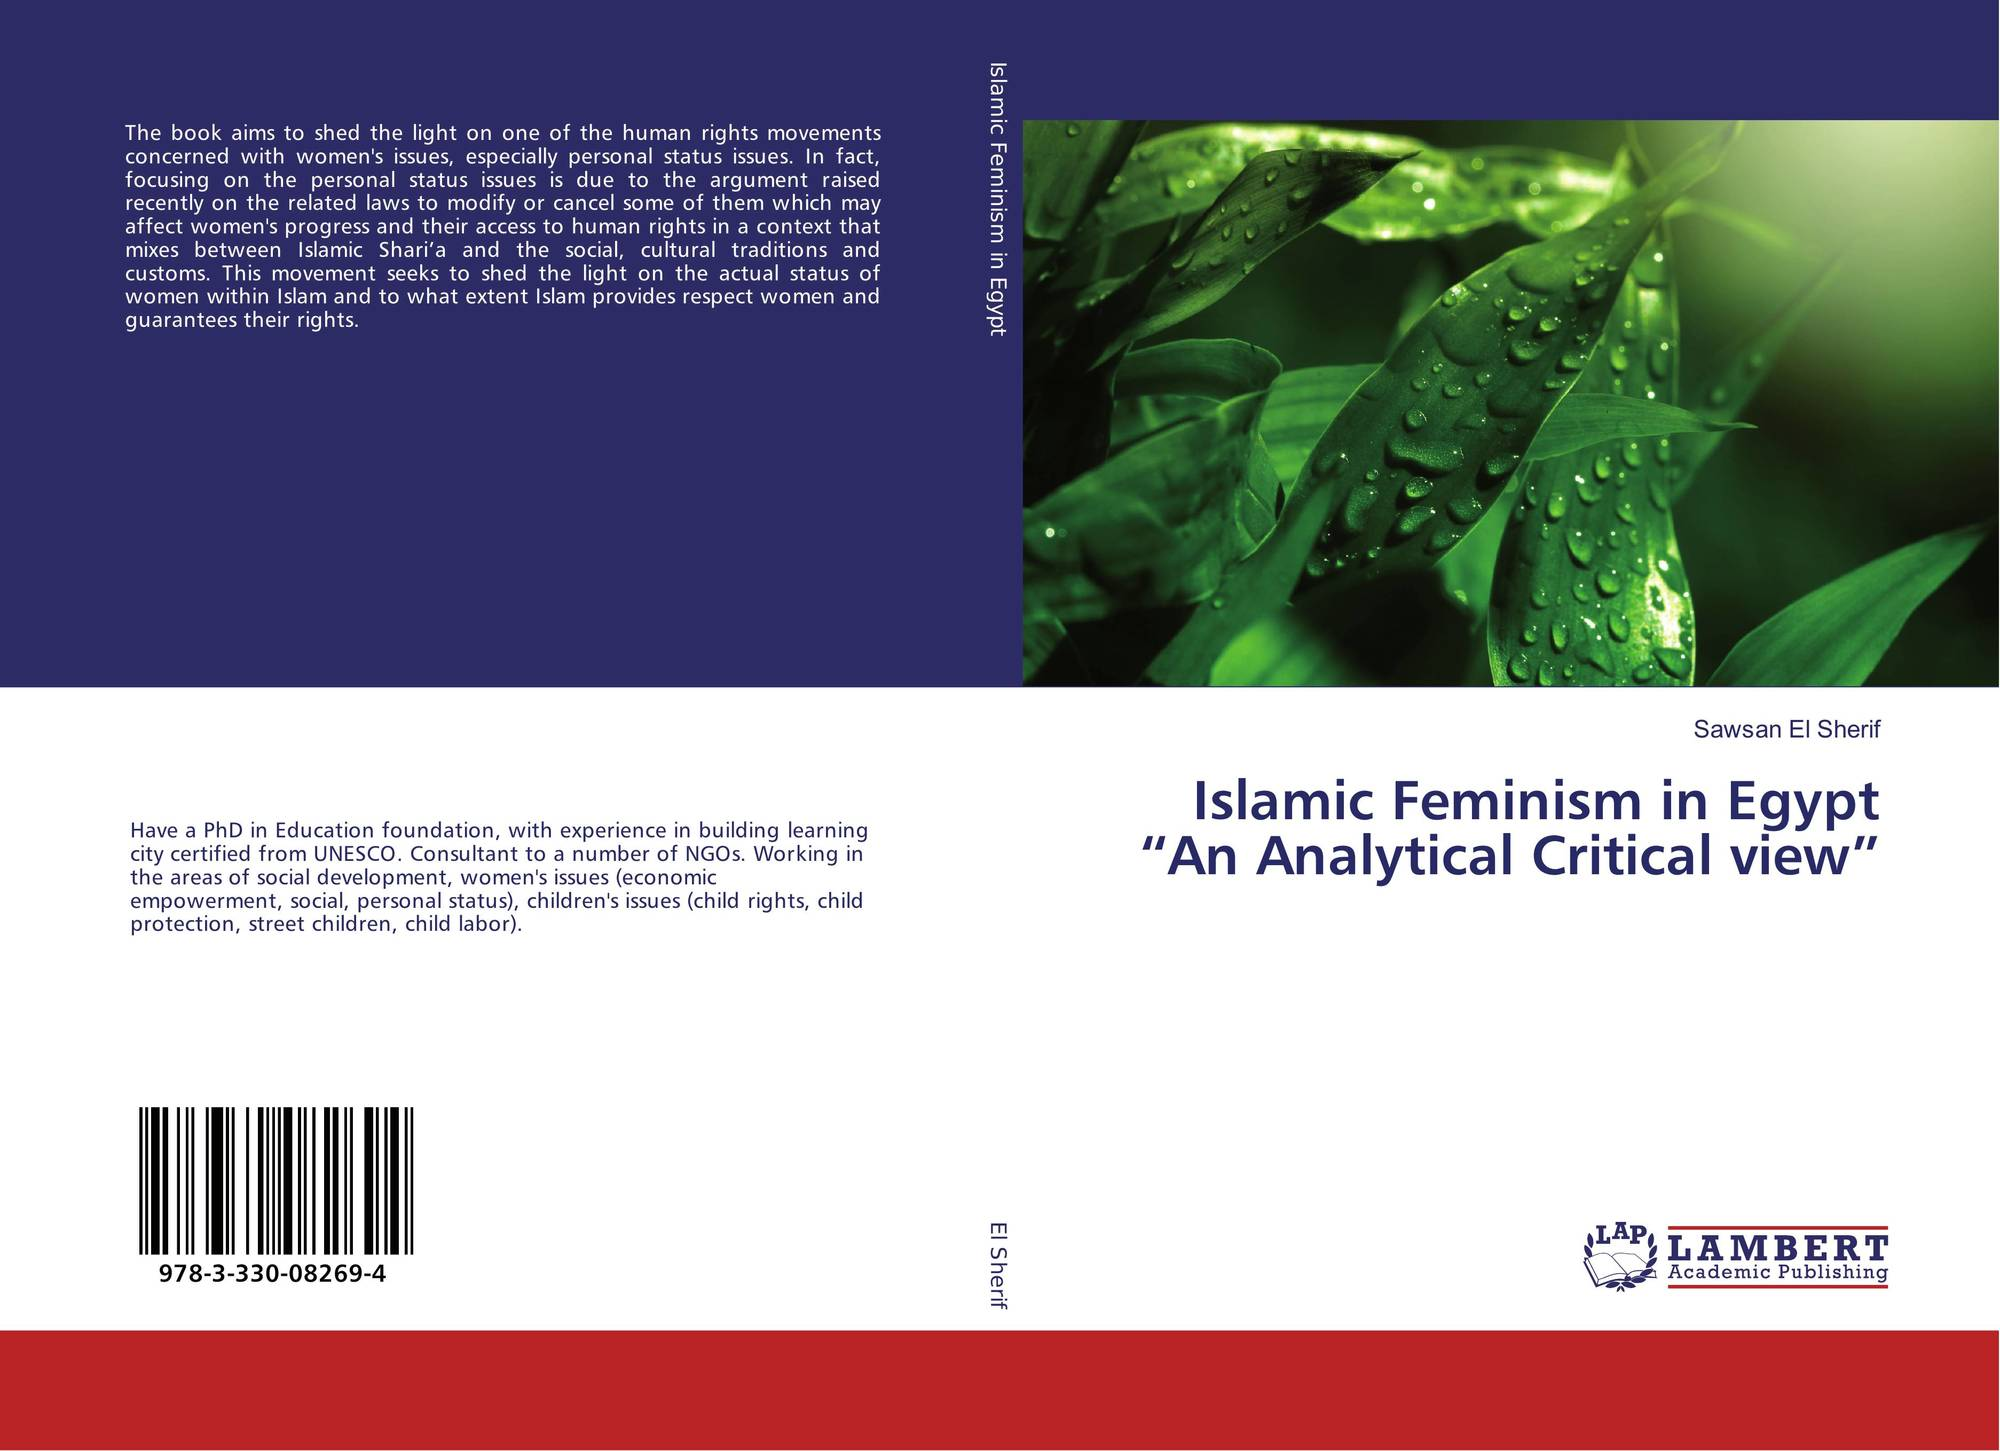 an analysis of real women status in islamic countries